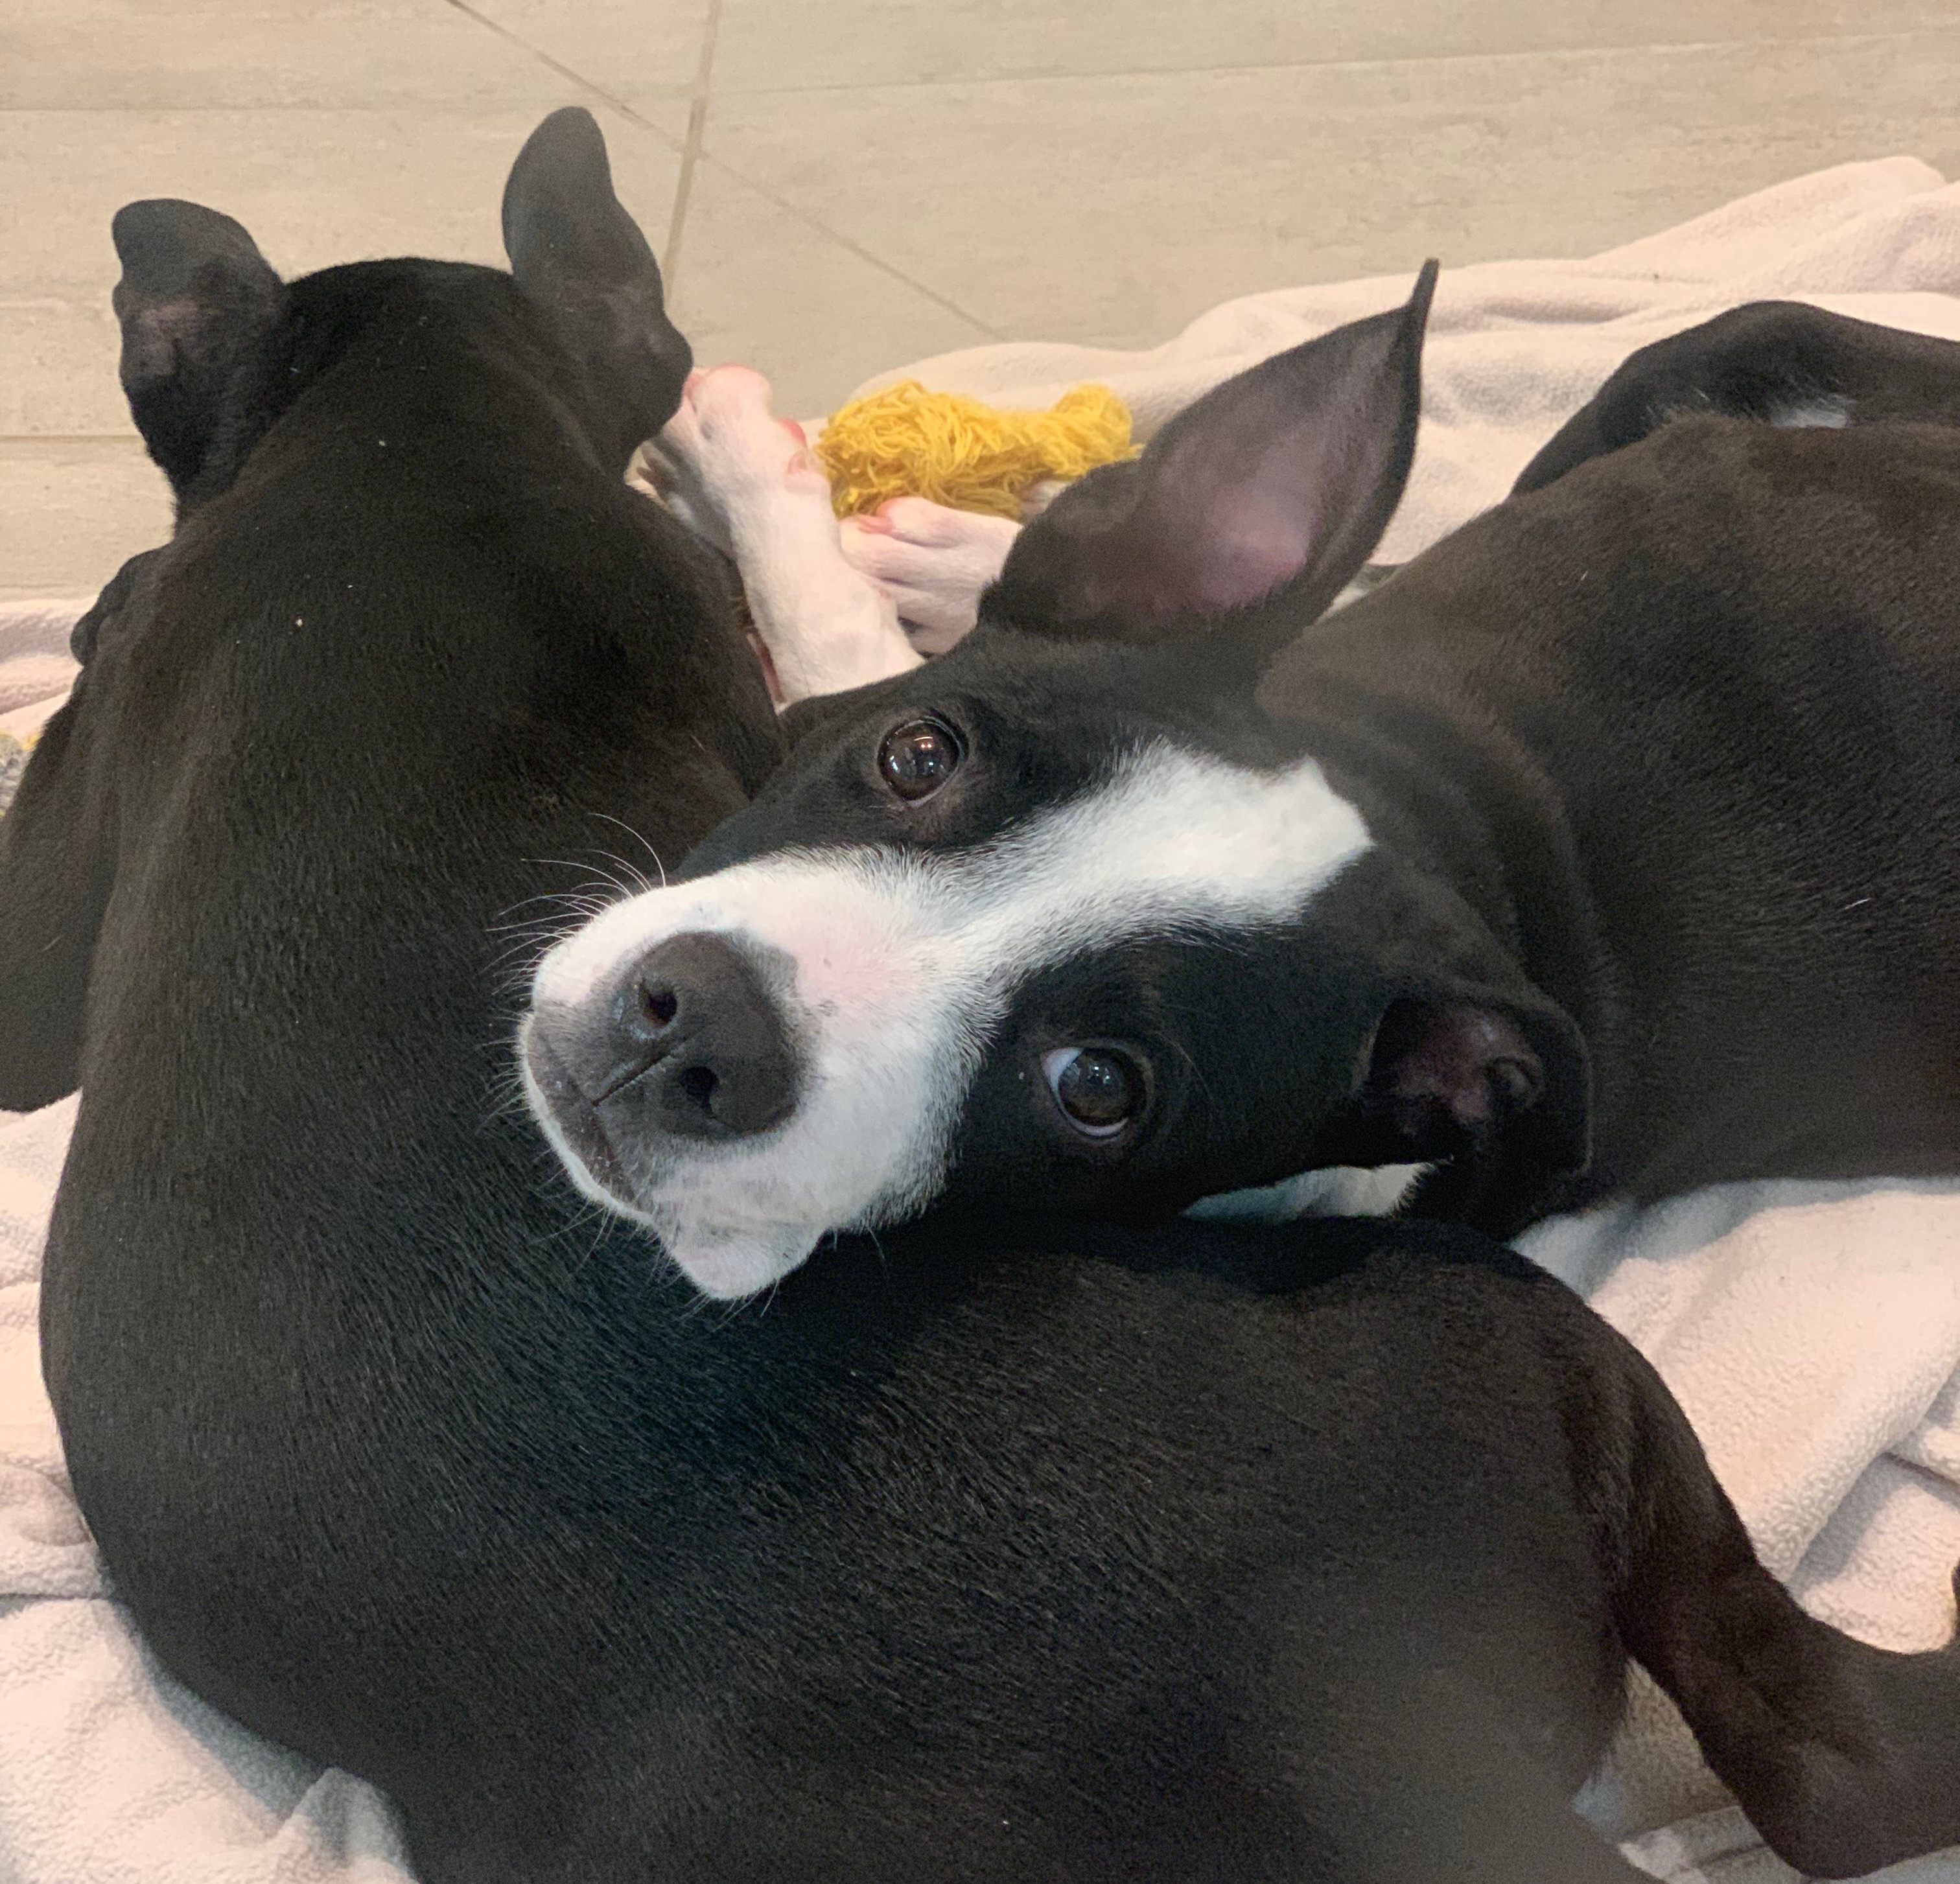 French Bulldog Mix Puppy Lying With His Head On His Brother's Butt